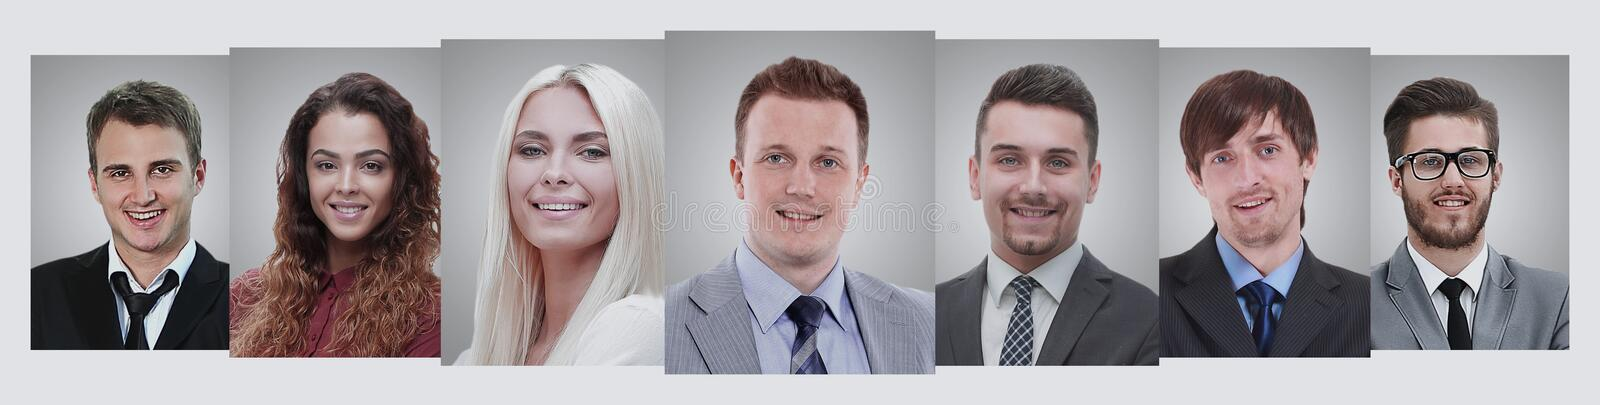 Panoramic collage of portraits of young entrepreneurs. royalty free stock image